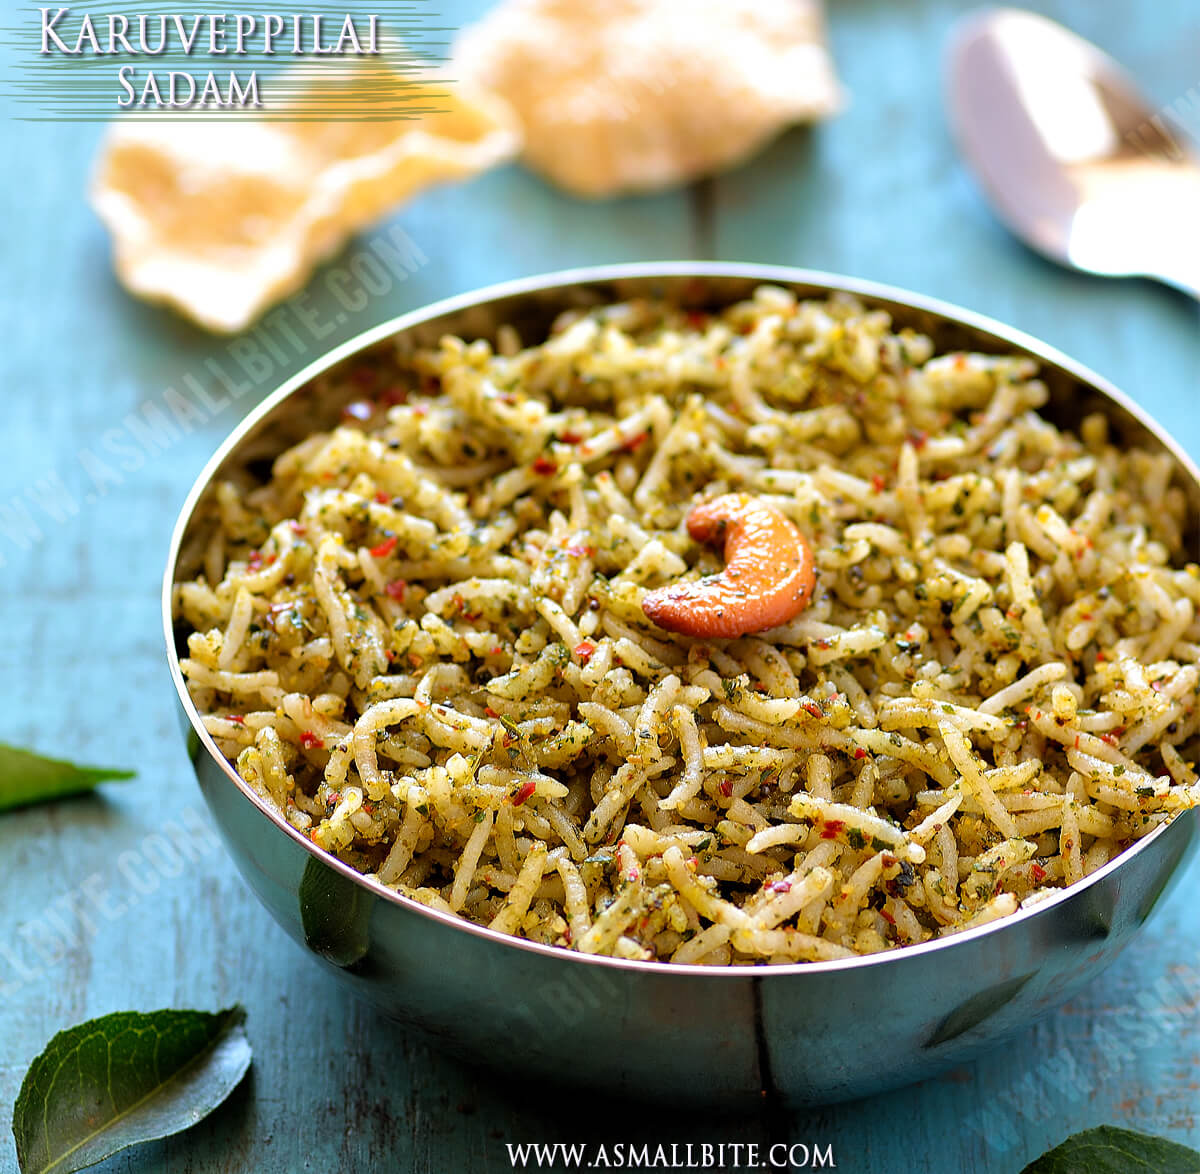 Karuveppilai Sadam Recipe